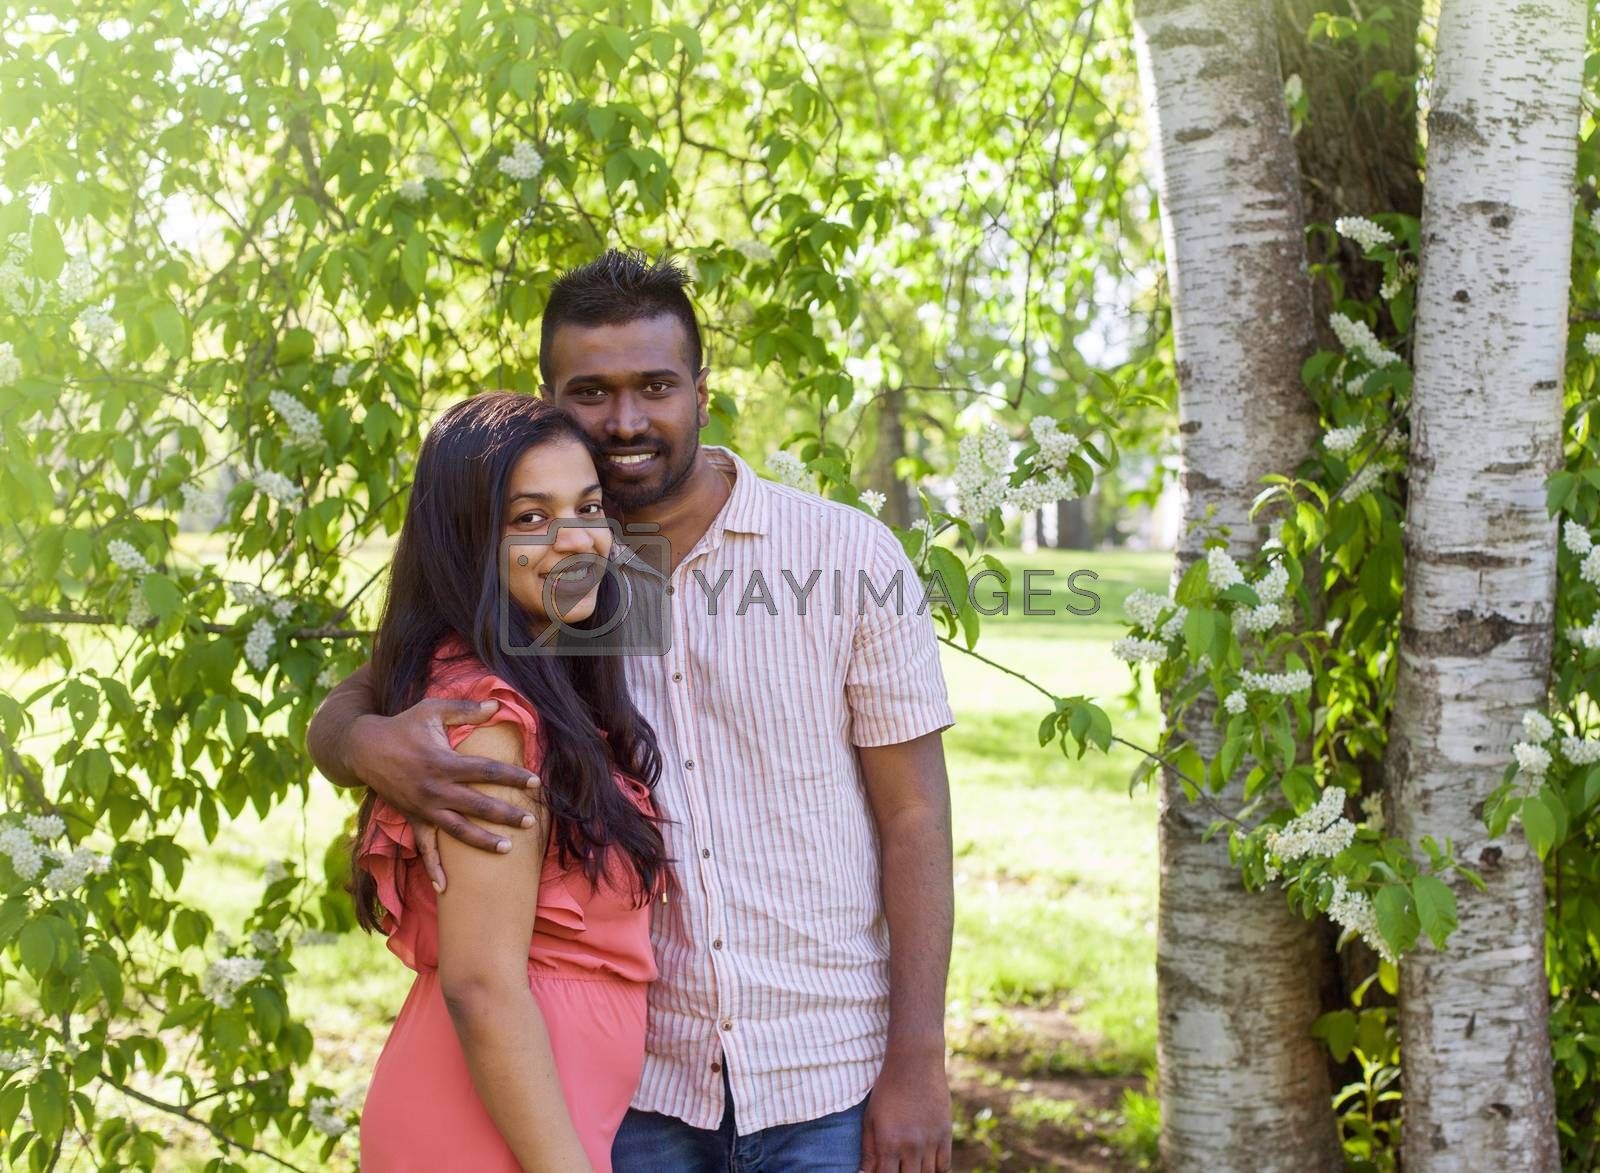 A south asian happy young couple is walking in city park